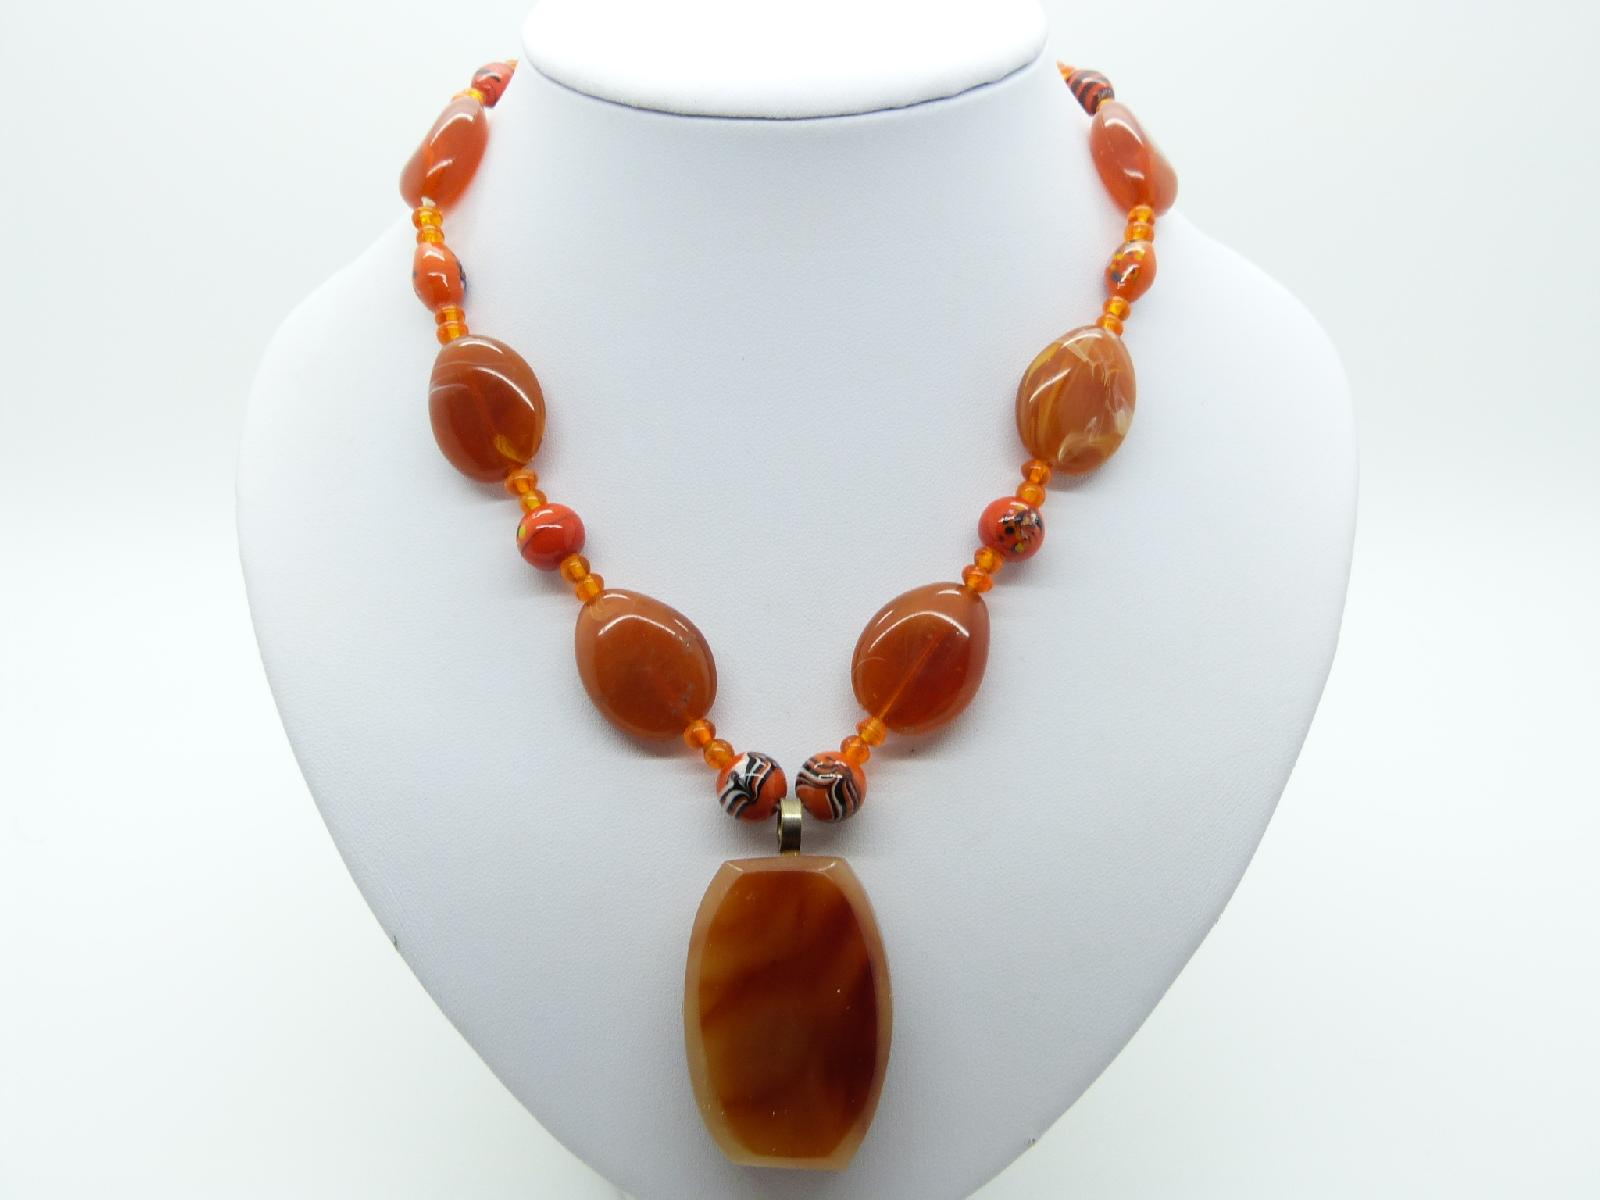 Vintage 70s Orange Murano Glsss and Amber Lucite Bead Pendant Necklace